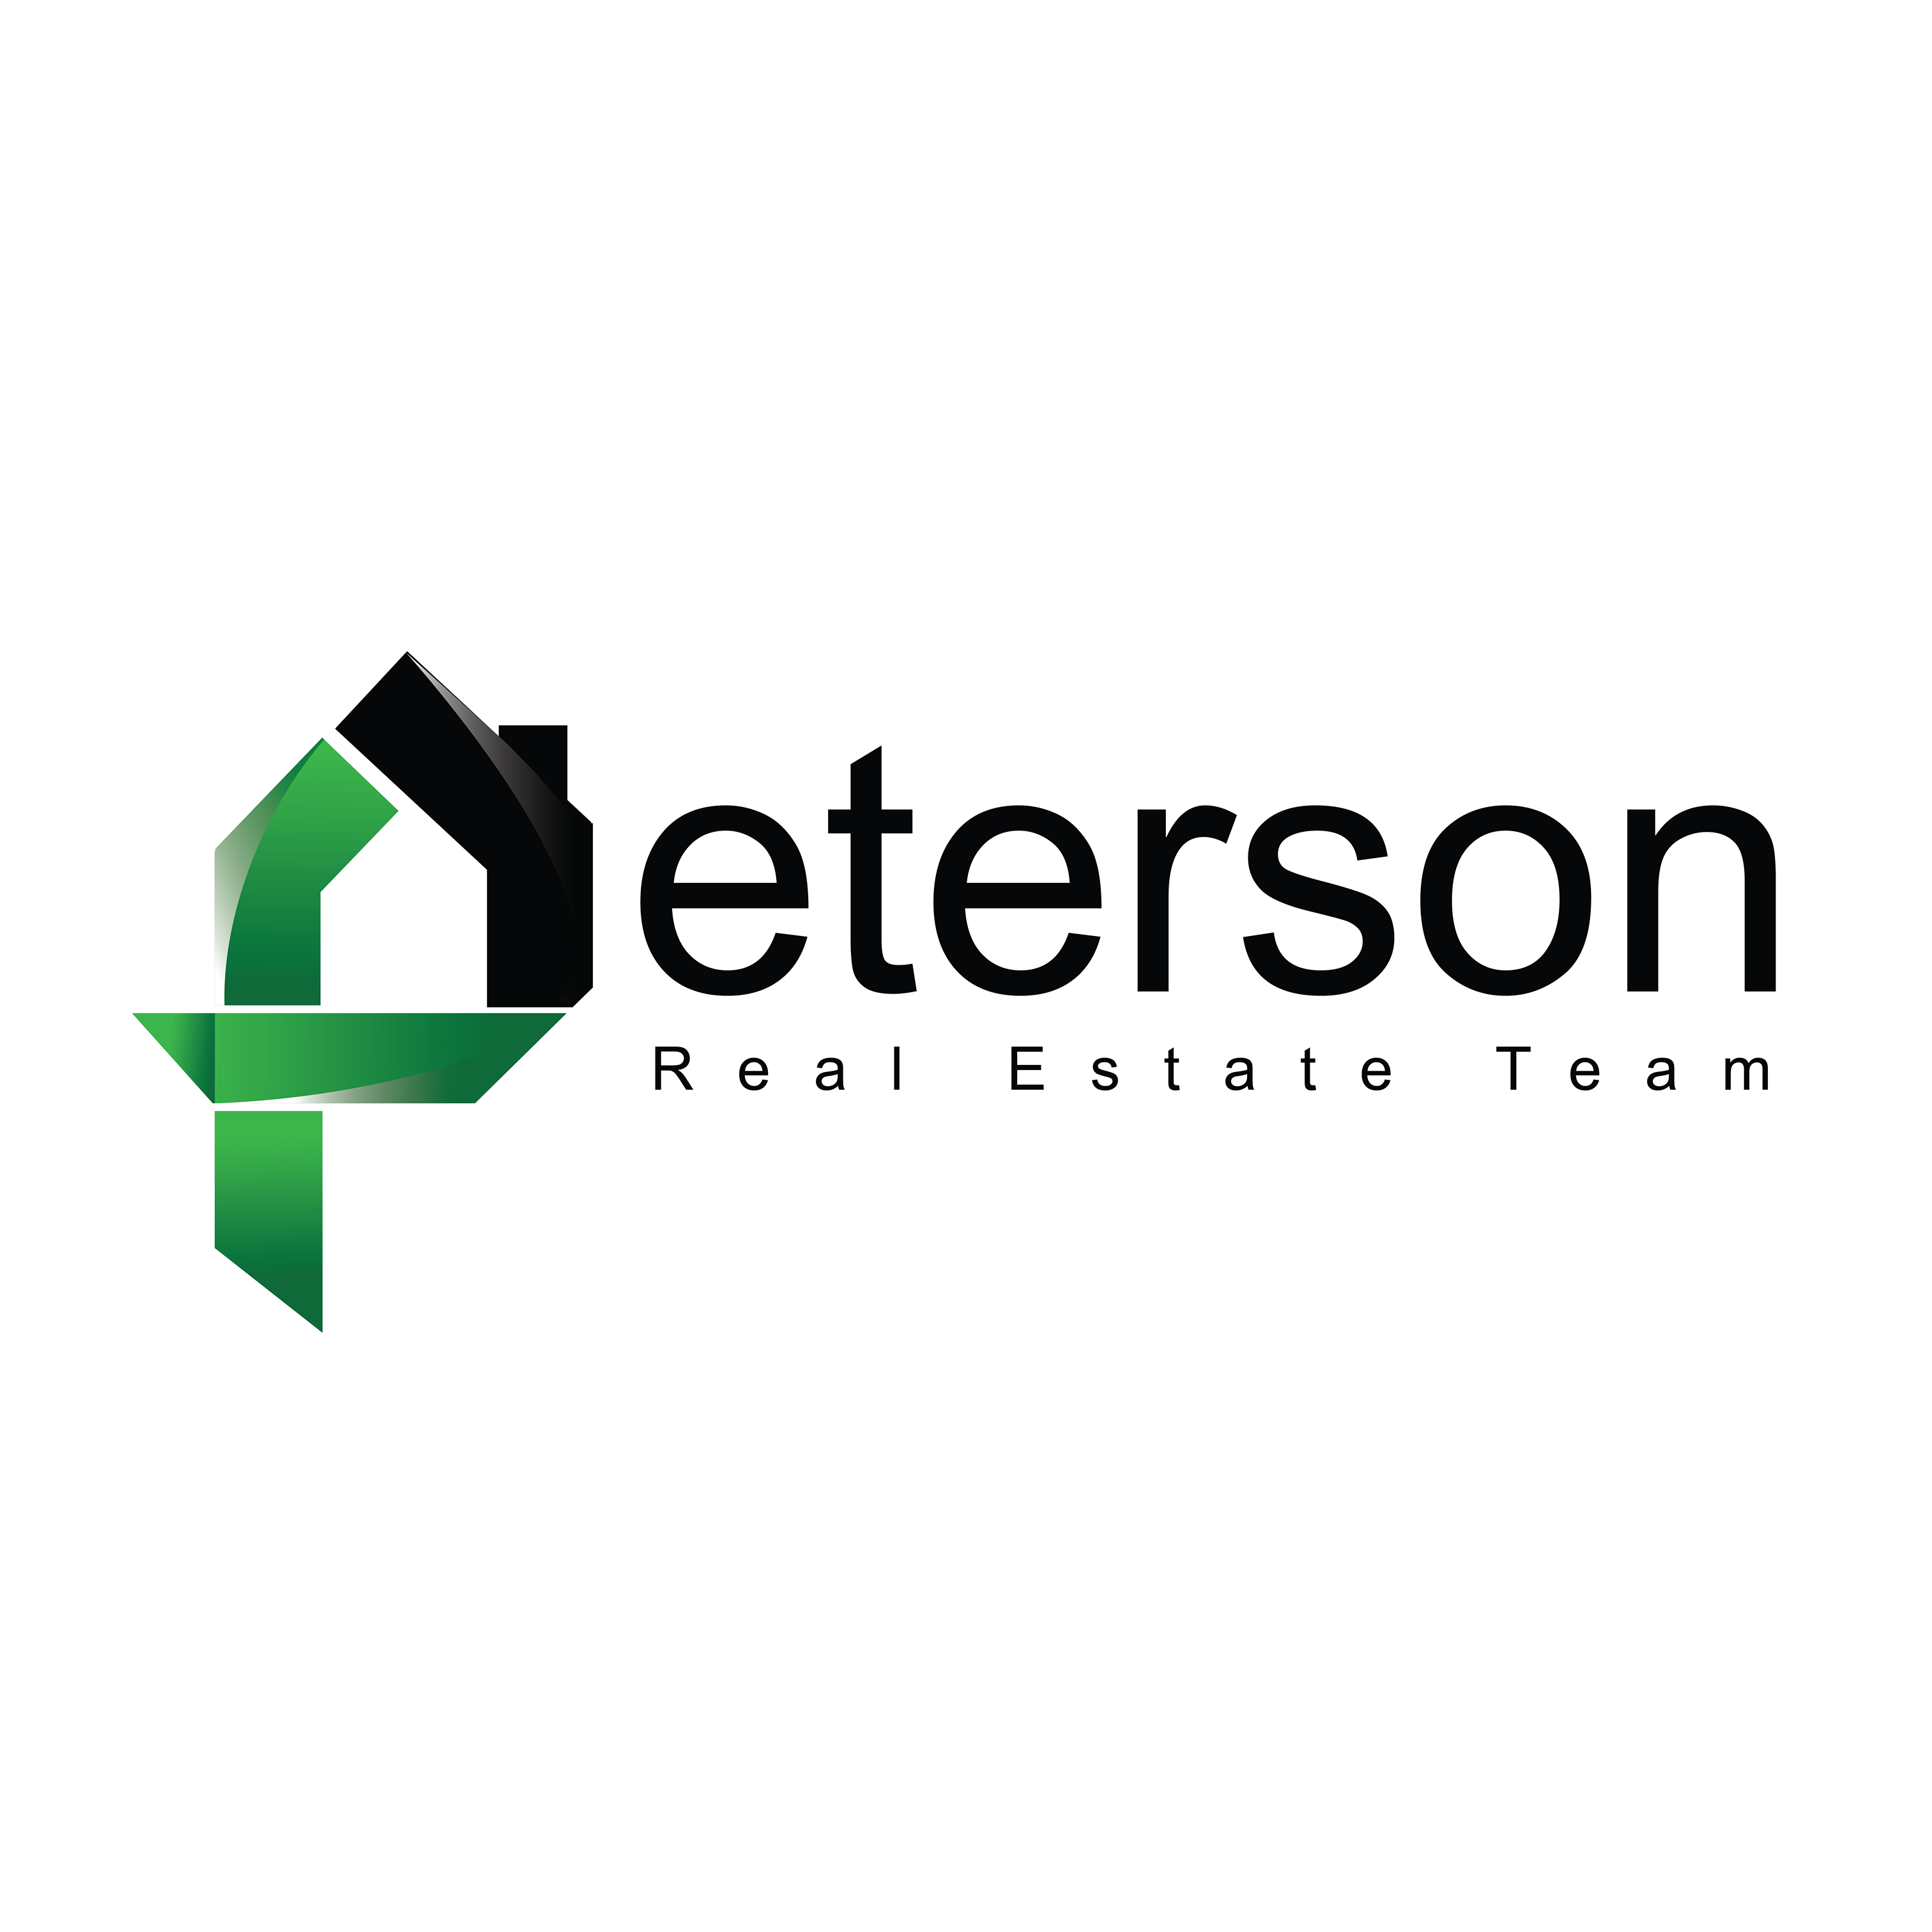 Bobby Peterson, Realtor